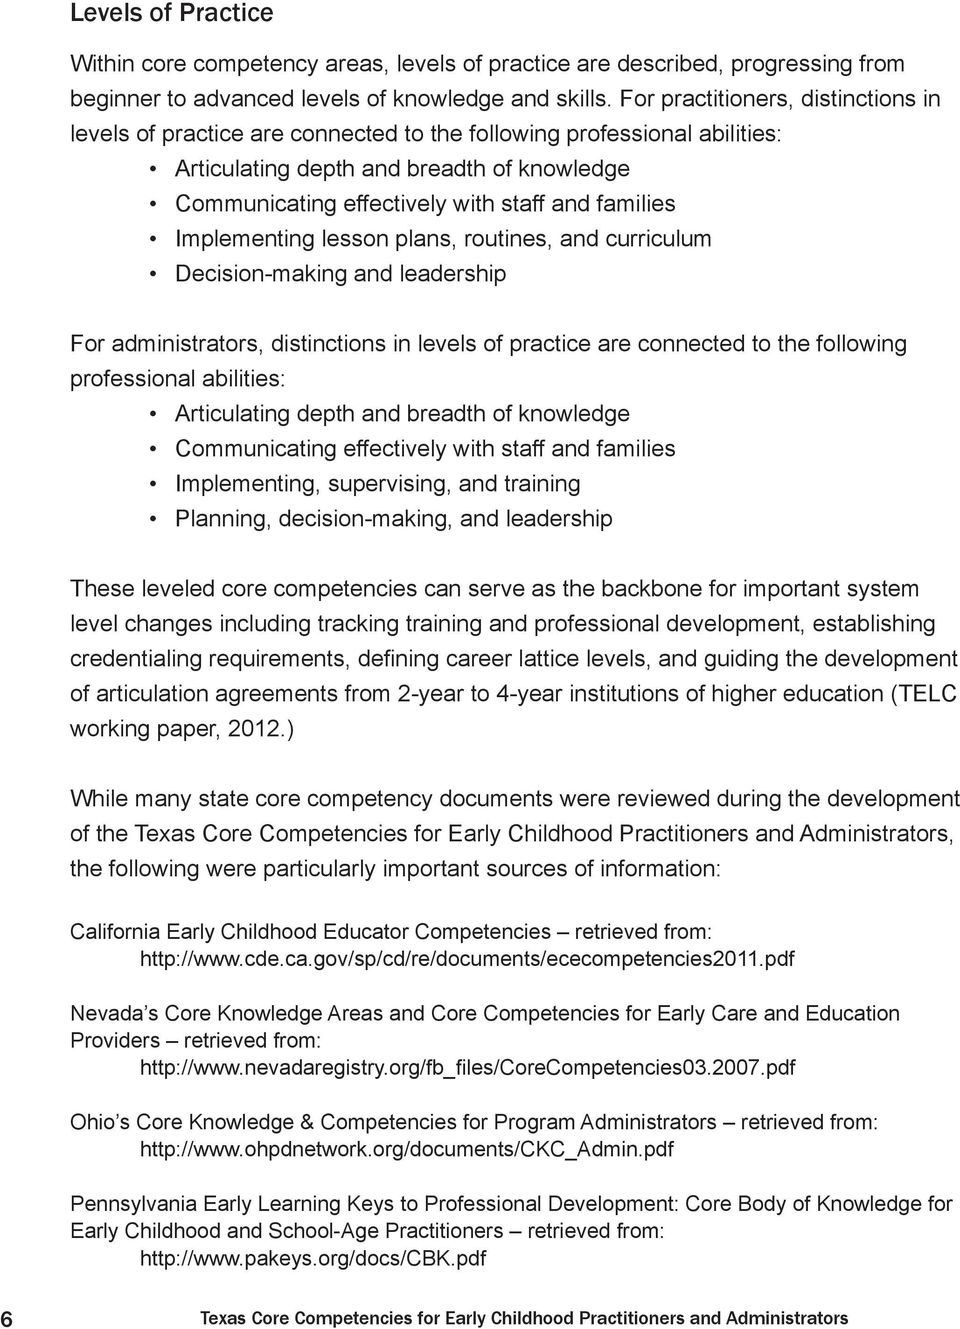 Texas Core Competencies For Early Childhood Practitioners And